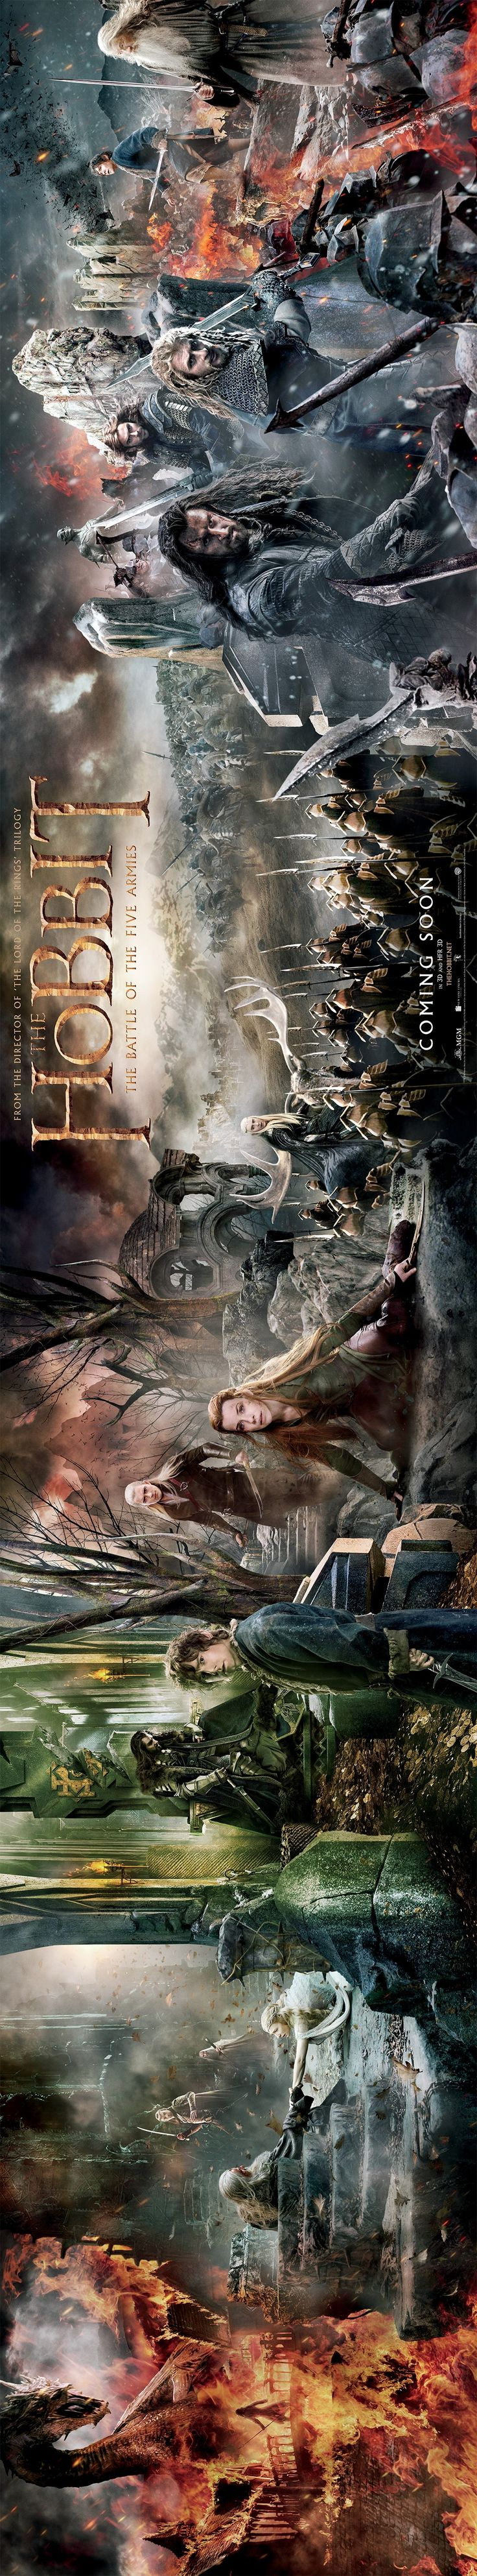 THEY RELEASED A TAPESTRY POSTER FOR BATTLE OF THE FIVE ARMIES AND I CAN'T EVEN IT'SO BEAUTIFUL